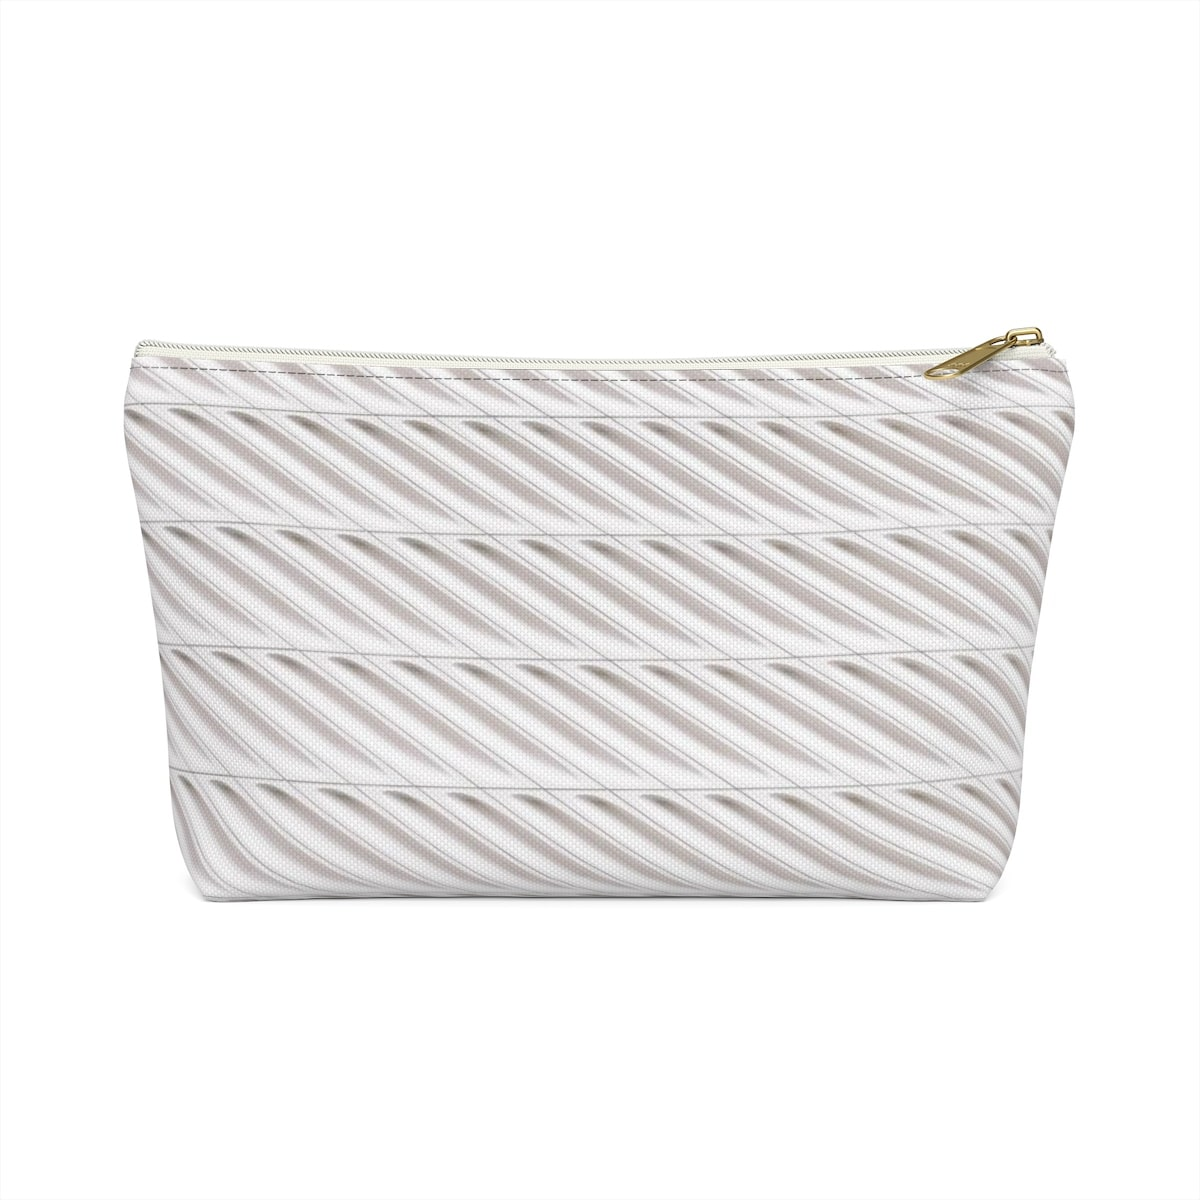 The Broad Museum Accessory Pouch w T-bottom - The Broad Museum Accessory Pouch w T-bottom - .: 100% Polyester .: Multiple sizes .: T-bottom 2,5 inches long .: With non-laminated lining